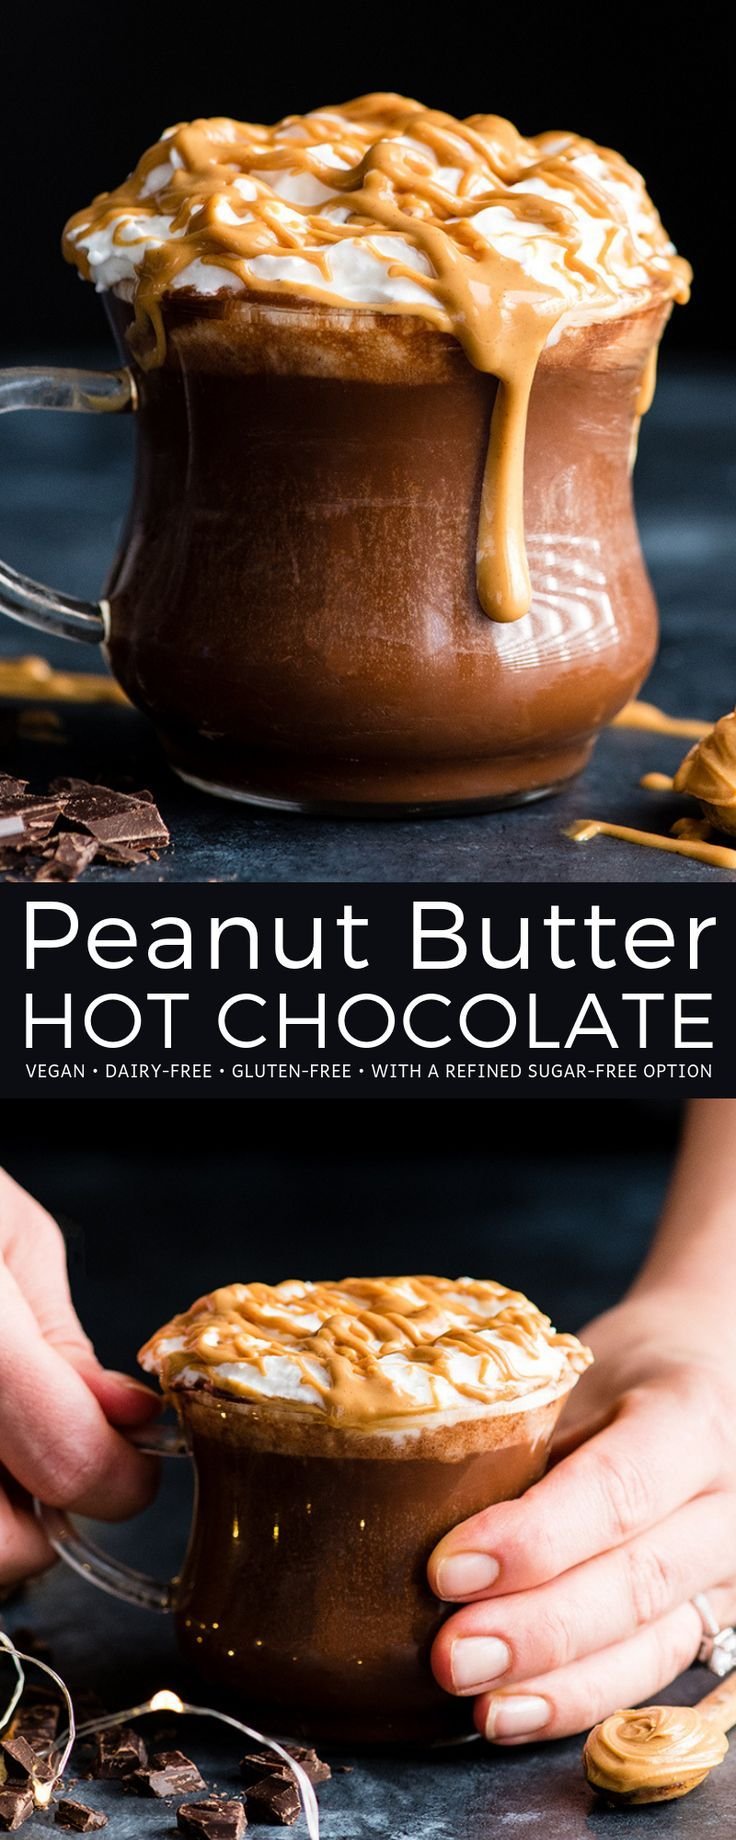 Peanut Butter Hot Chocolate - JoyFoodSunshine